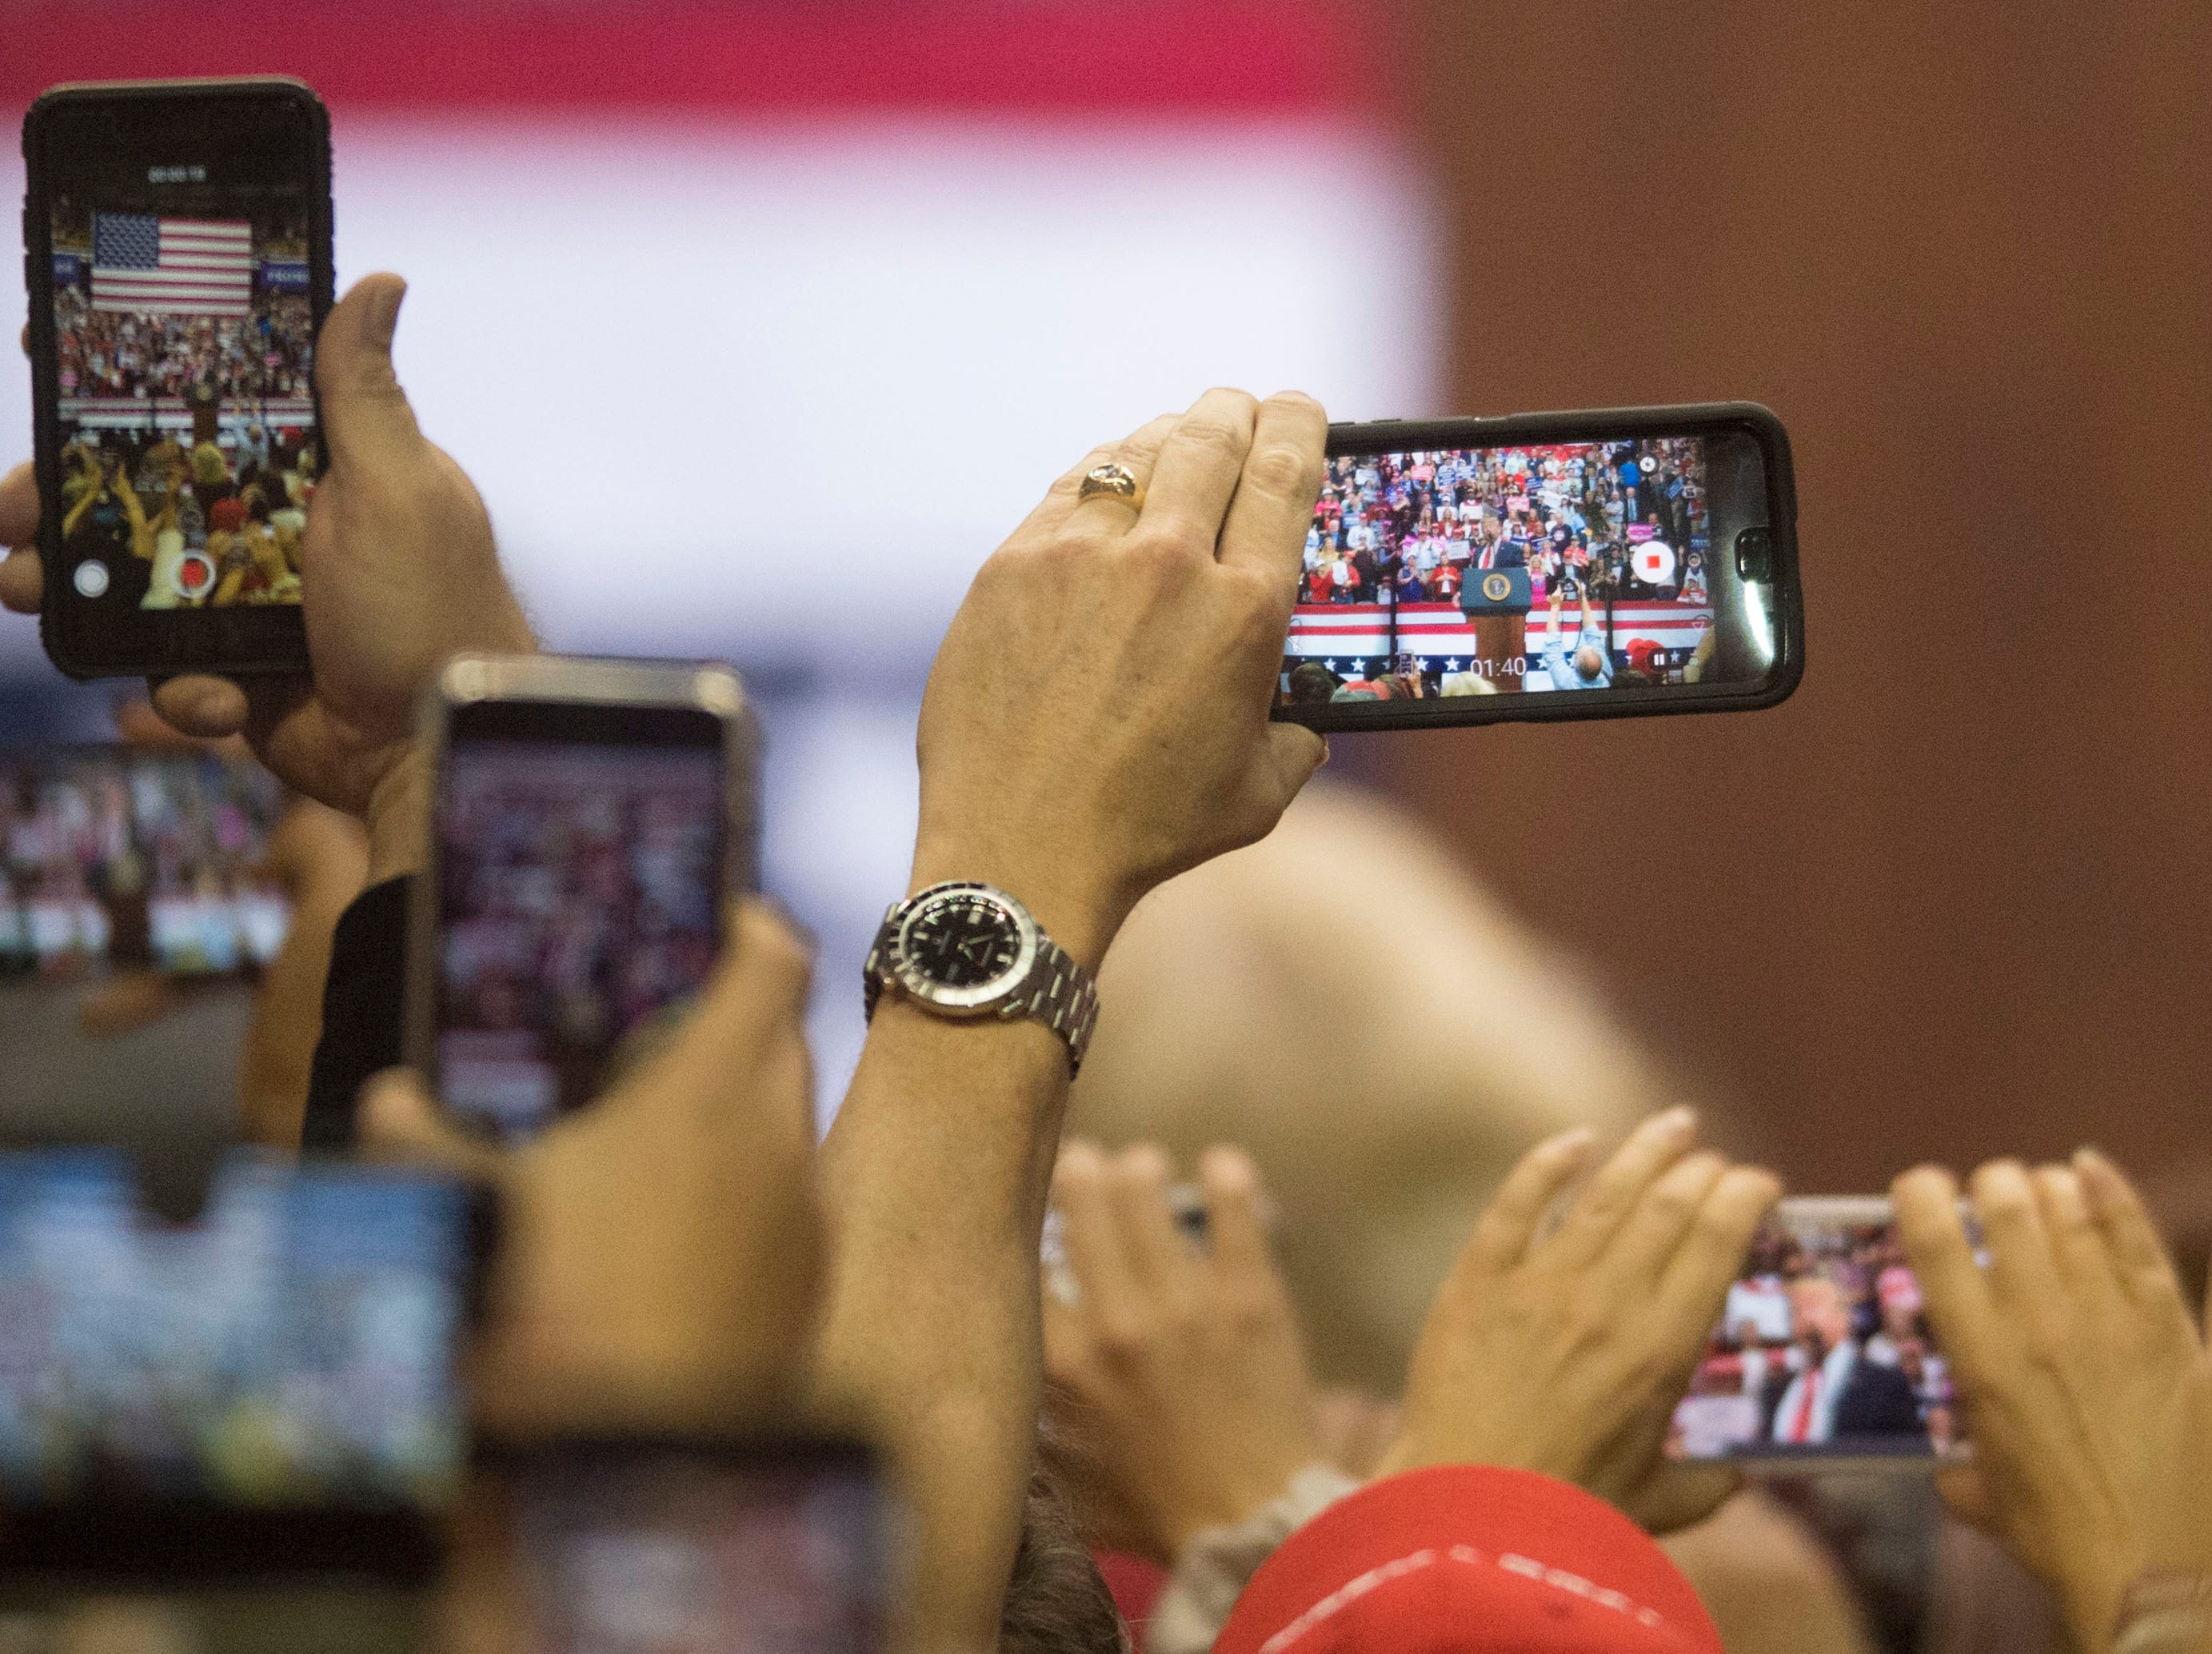 Trump supporters capture him on their phones during a Donald Trump rally in support of U.S. Rep. Marsha Blackburn for the U.S. Senate at McKenzie Arena in Chattanooga, Sunday, Nov. 4, 2018.